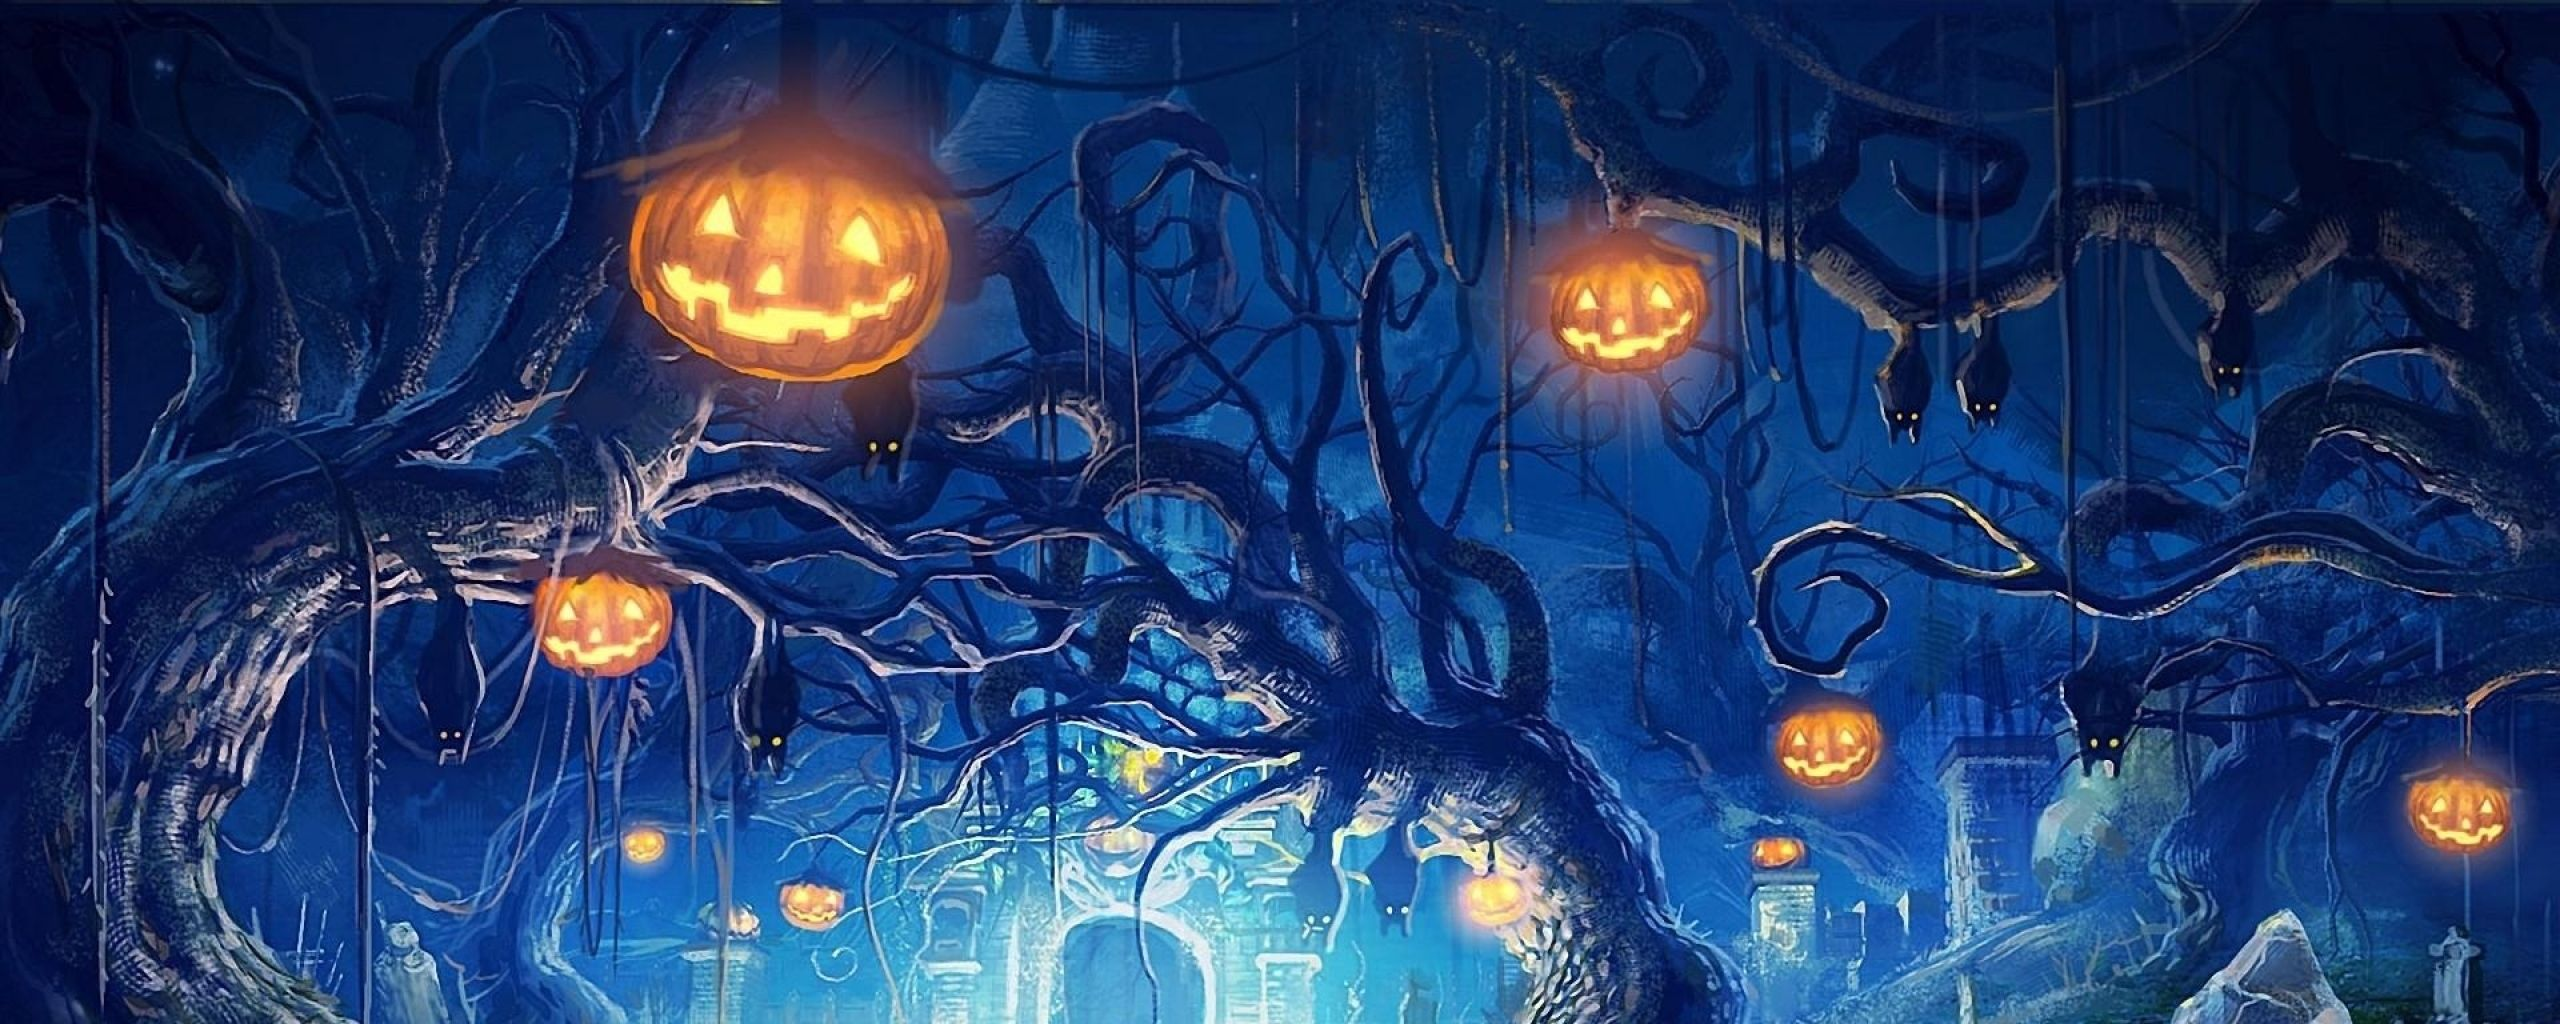 2560x1024 Halloween Desktop Wallpaper Dual Monitor Resolution Halloween .